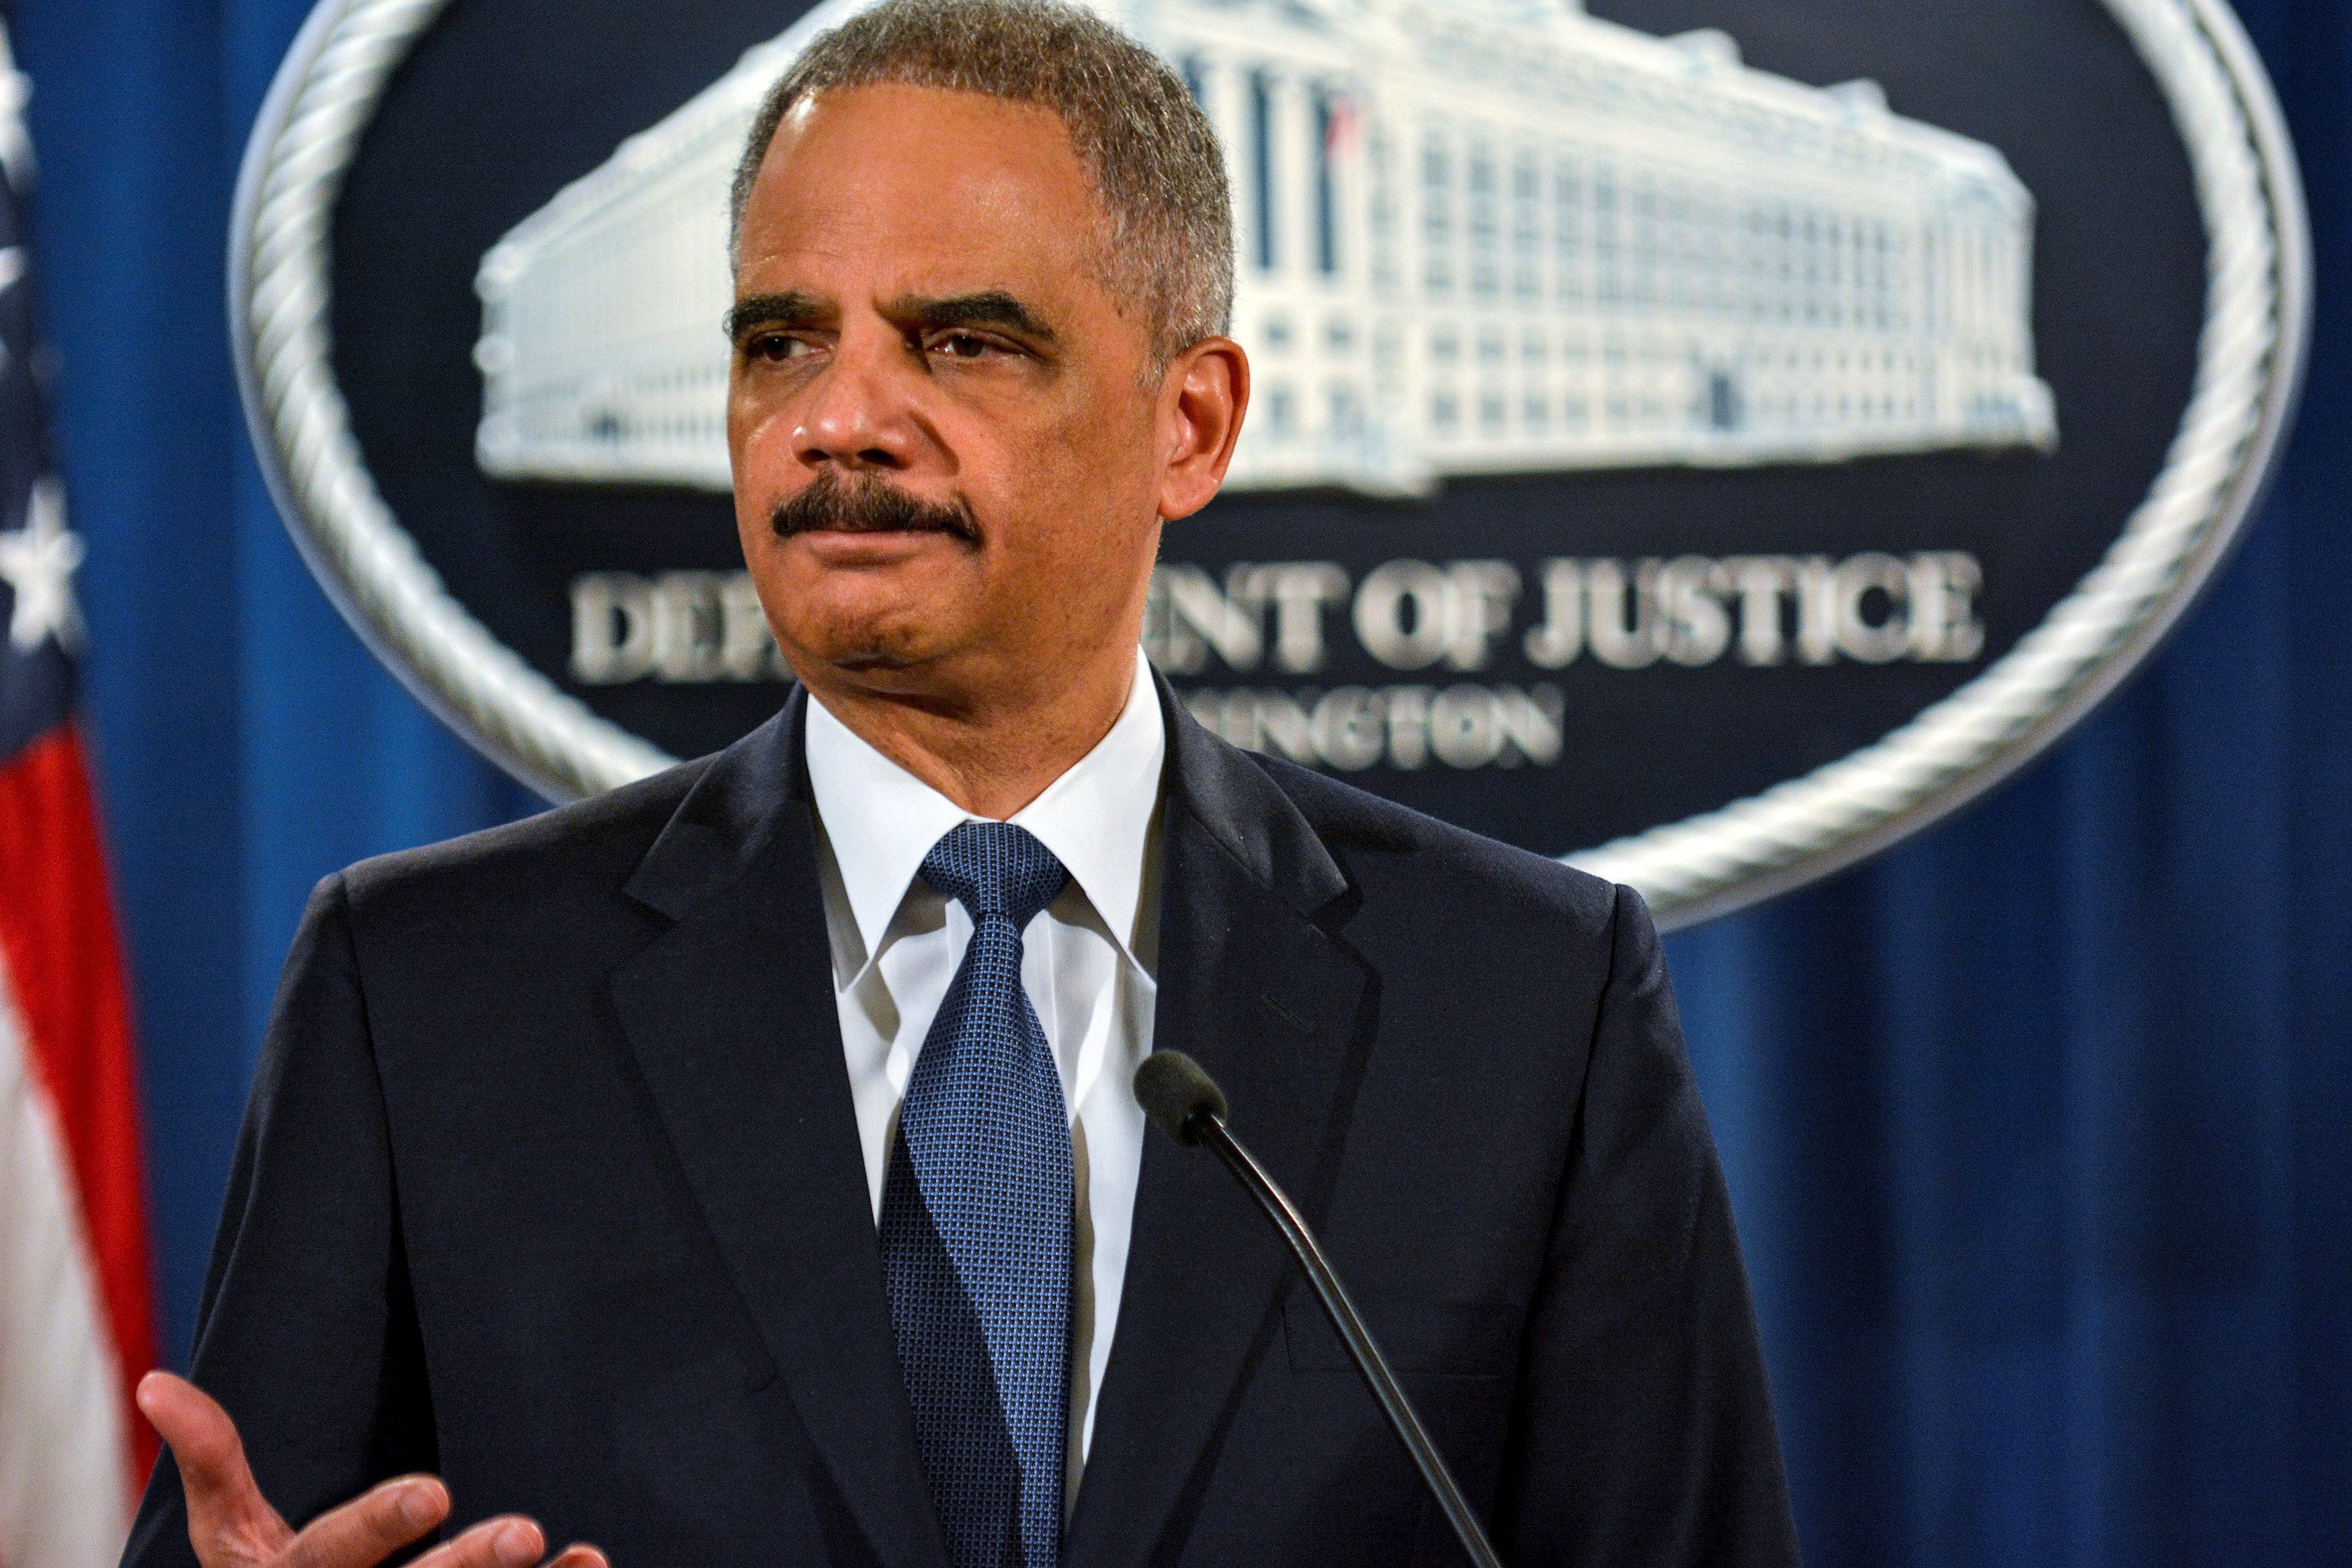 FILE PHOTO: Then U.S. Attorney General Eric Holder addresses a Justice Department news conference in Washington, U.S., March 4, 2015. To match OBAMA-LAWYERS/ REUTERS/James Lawler Duggan/Files